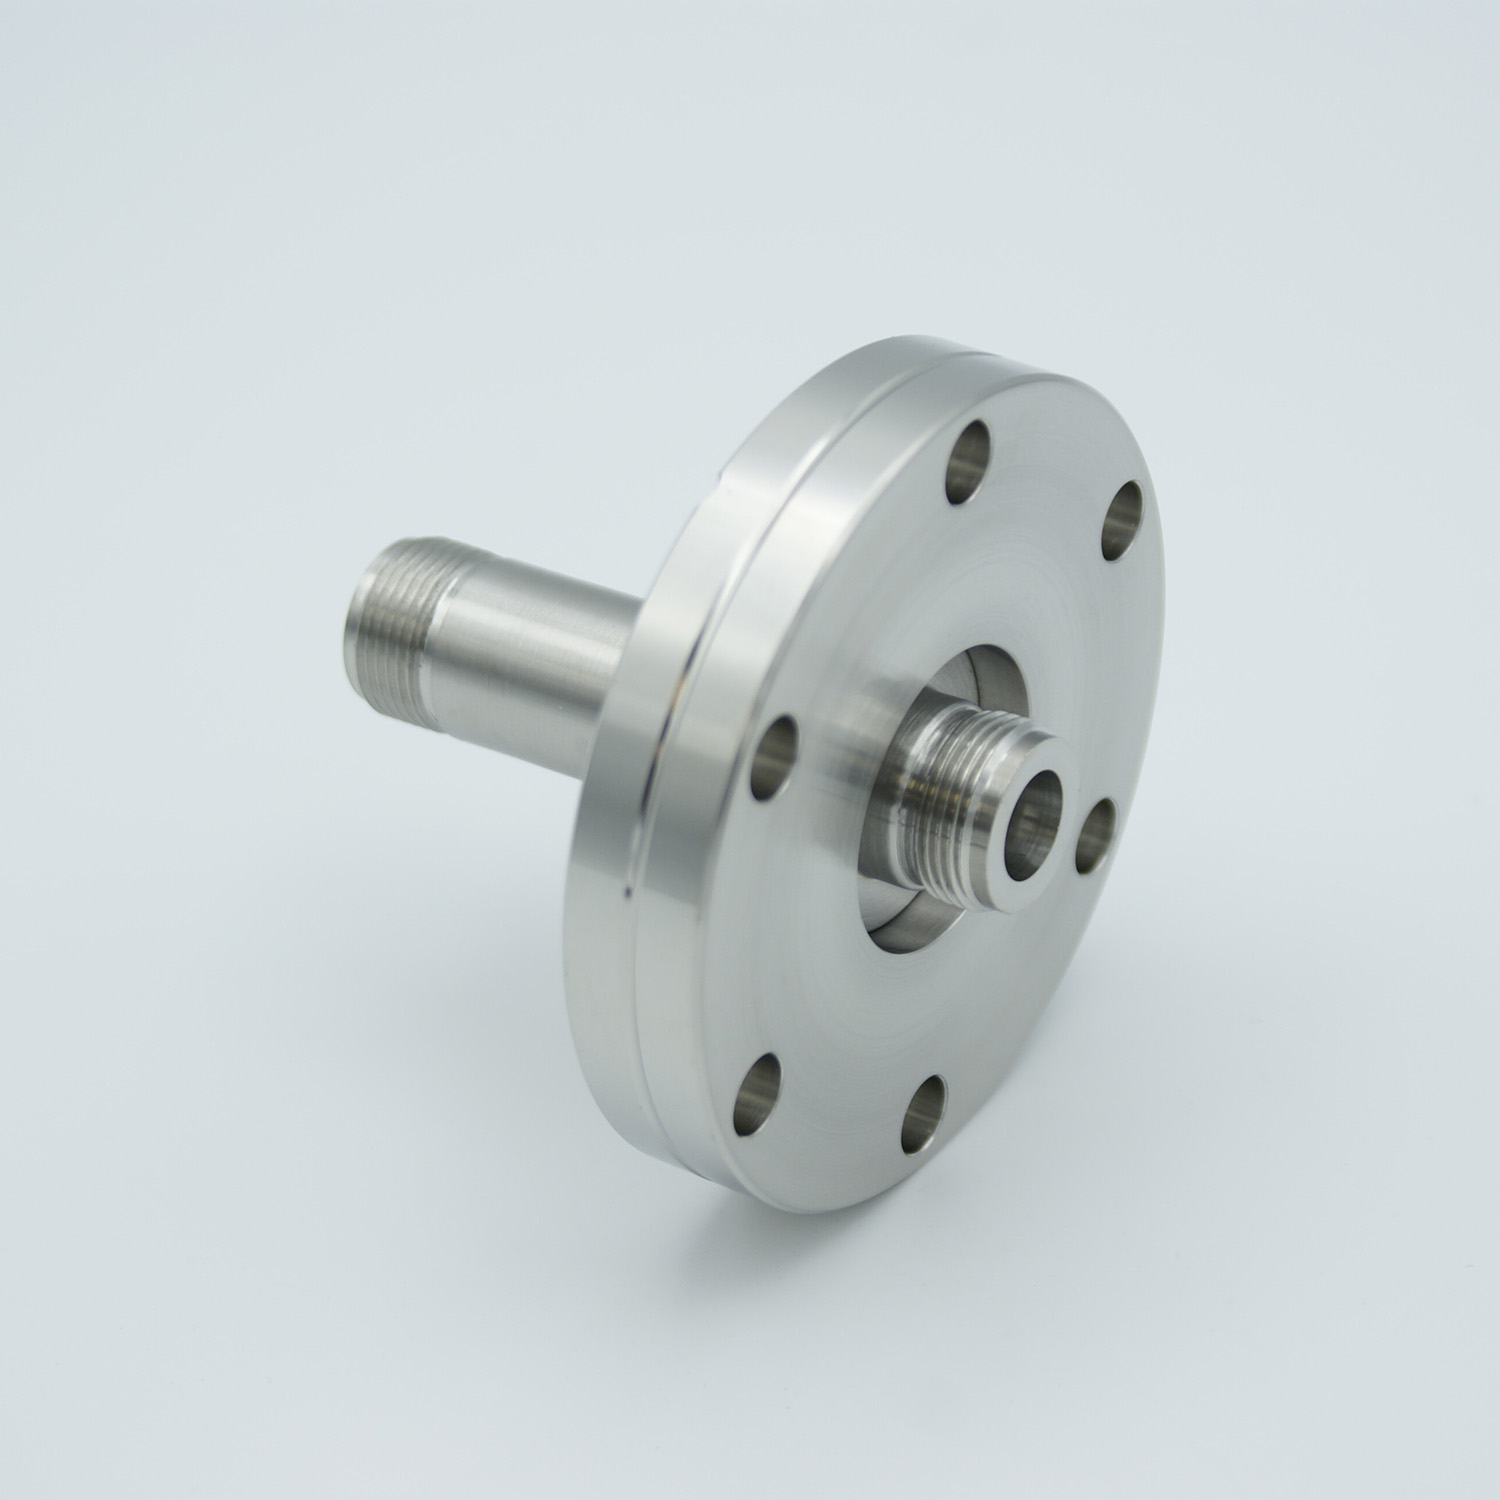 Type-N feedthrough double ended 500VDC, / 3 Amp, air side connector included DN40CF flange